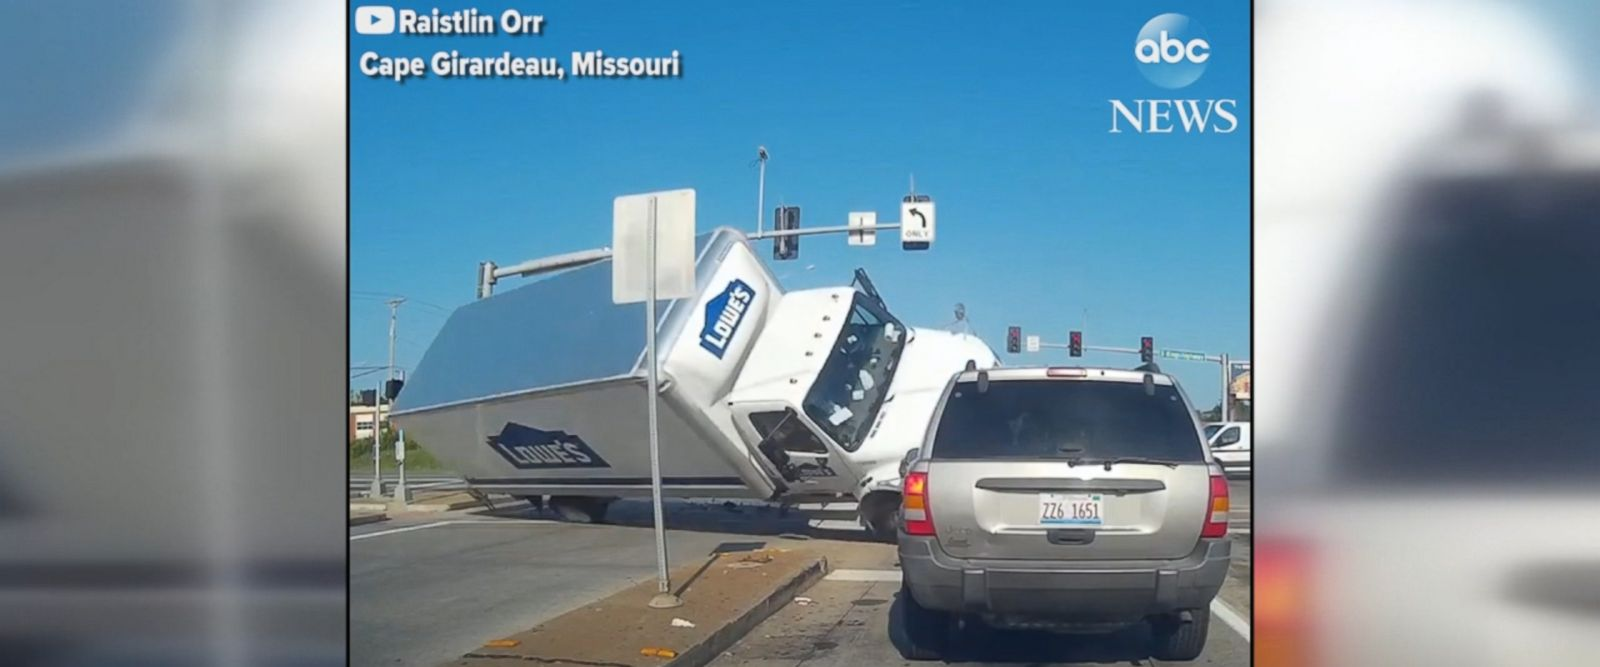 A Lowe's Home Improvement truck apparently ran a red light in Missouri, colliding with a car and flipping over in the intersection.